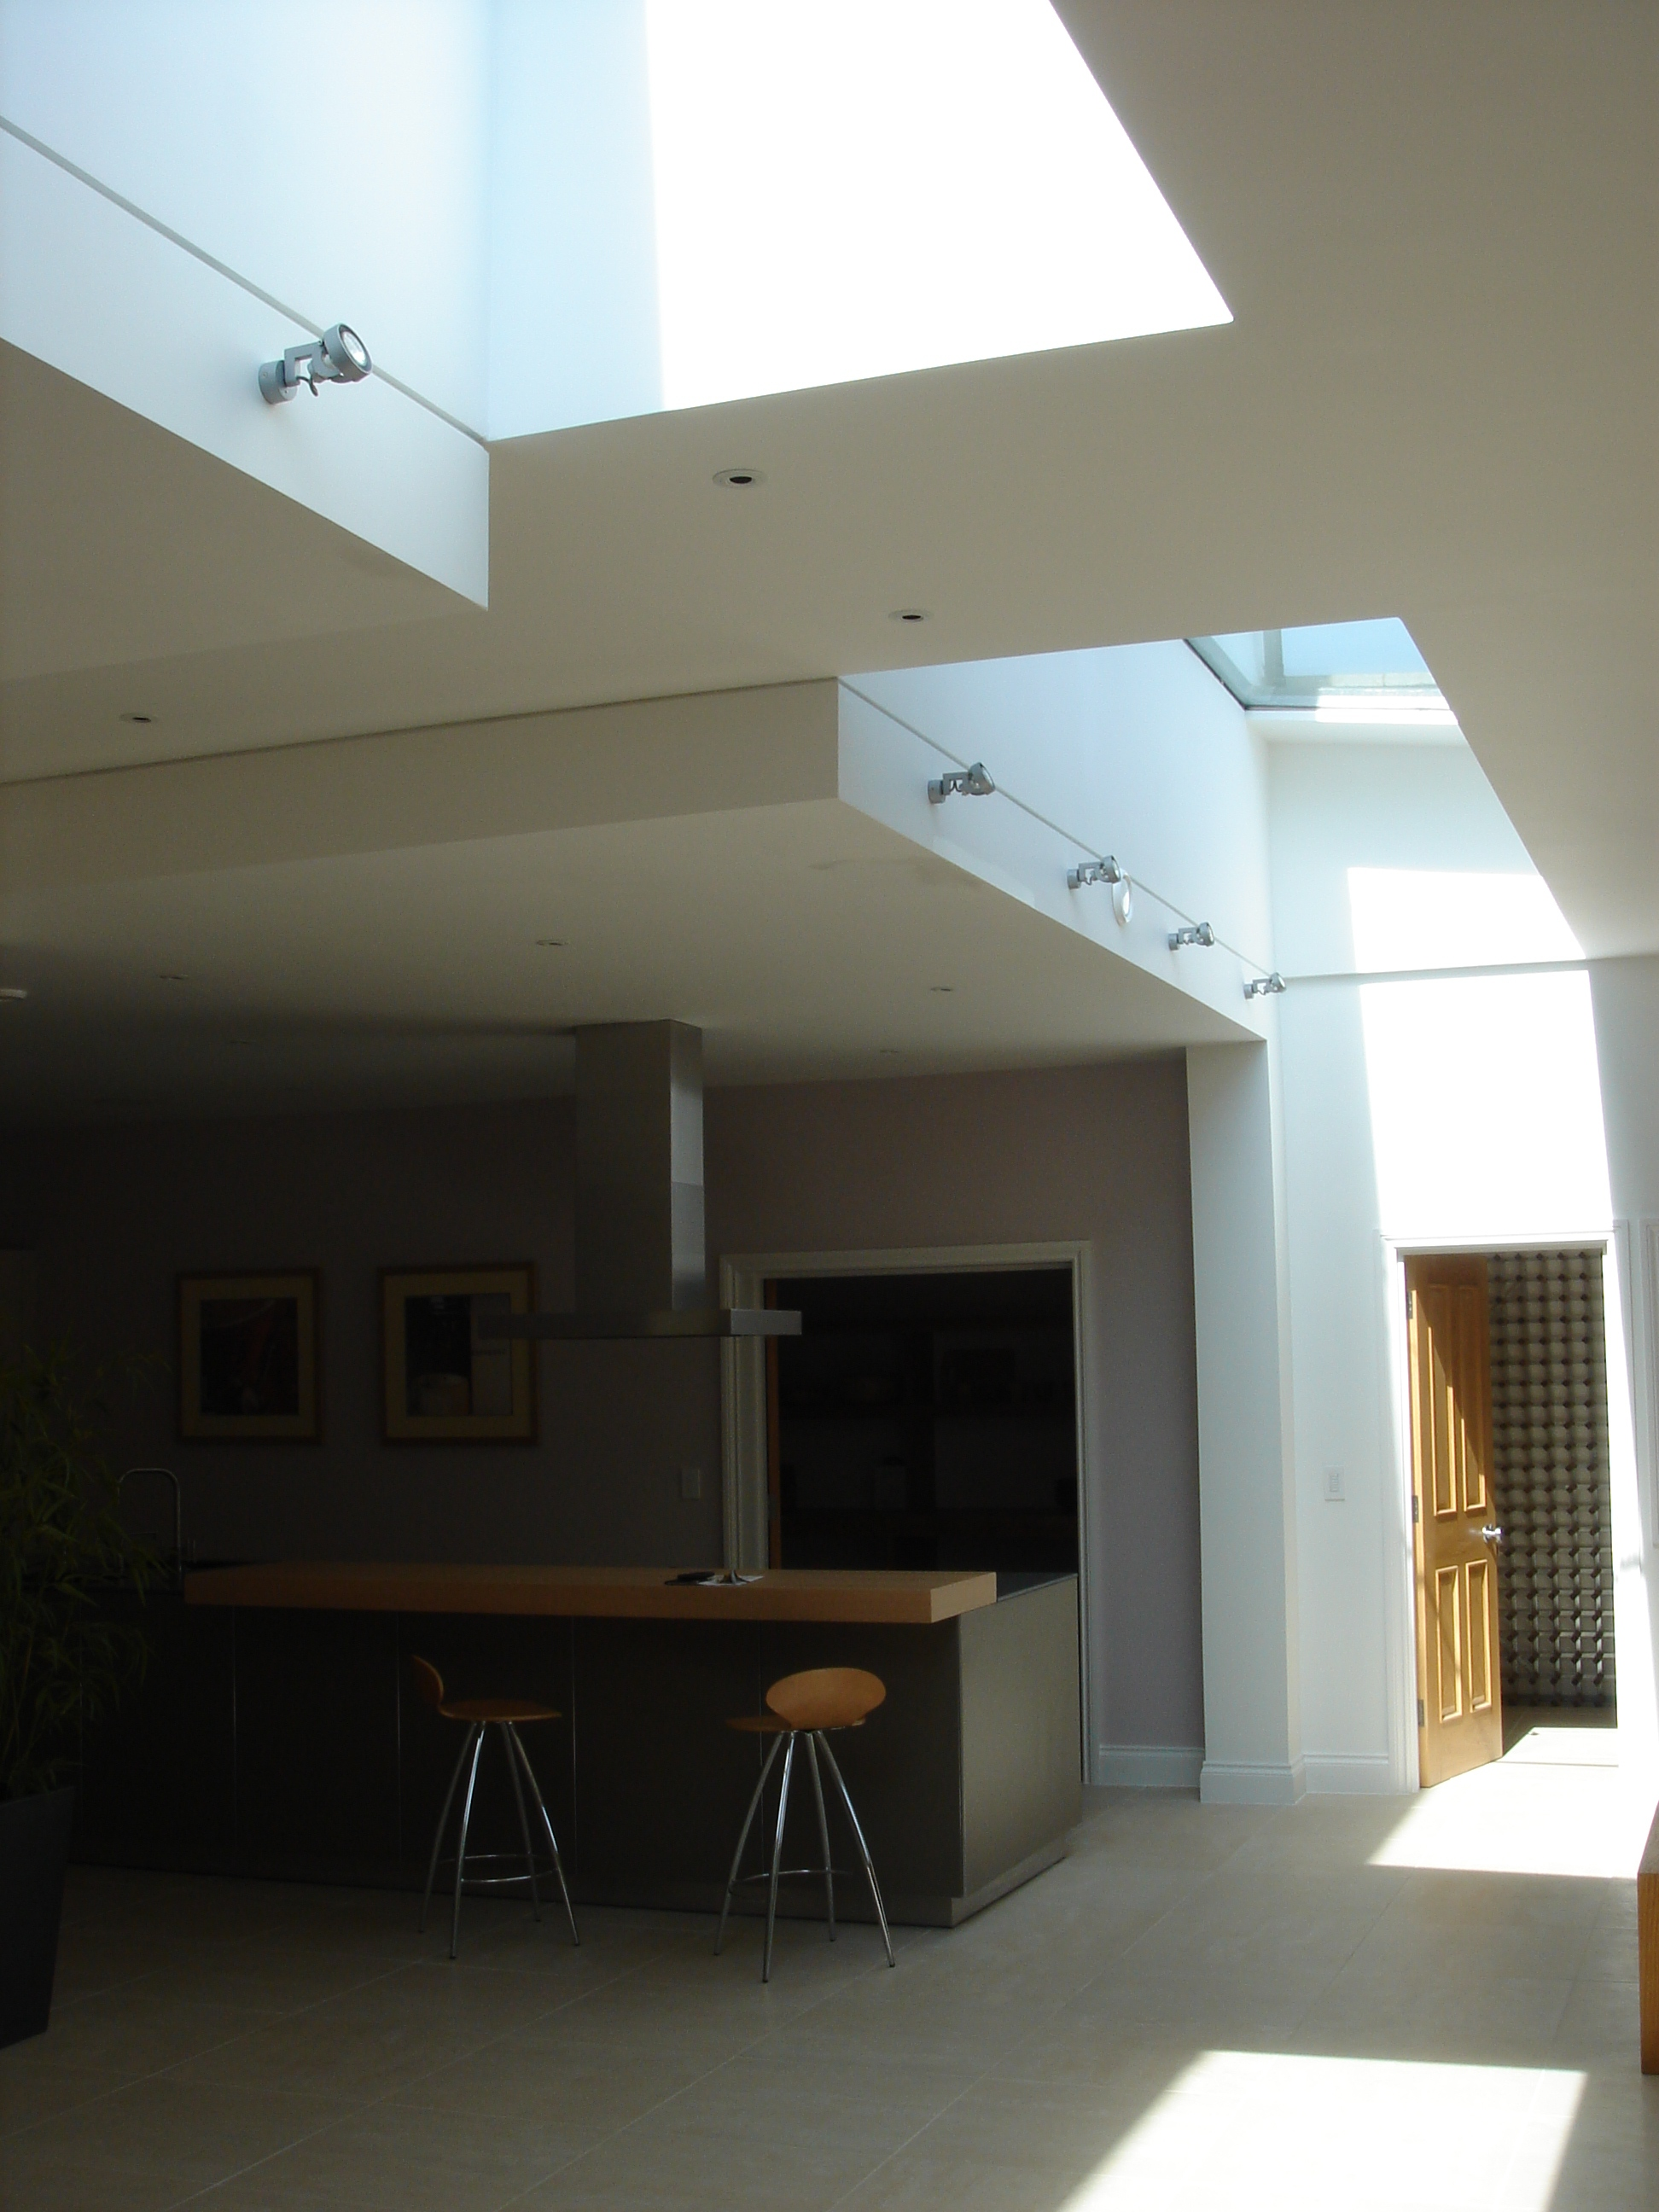 creativemass - roof light, extension, natural light, shadows, kitchen, London